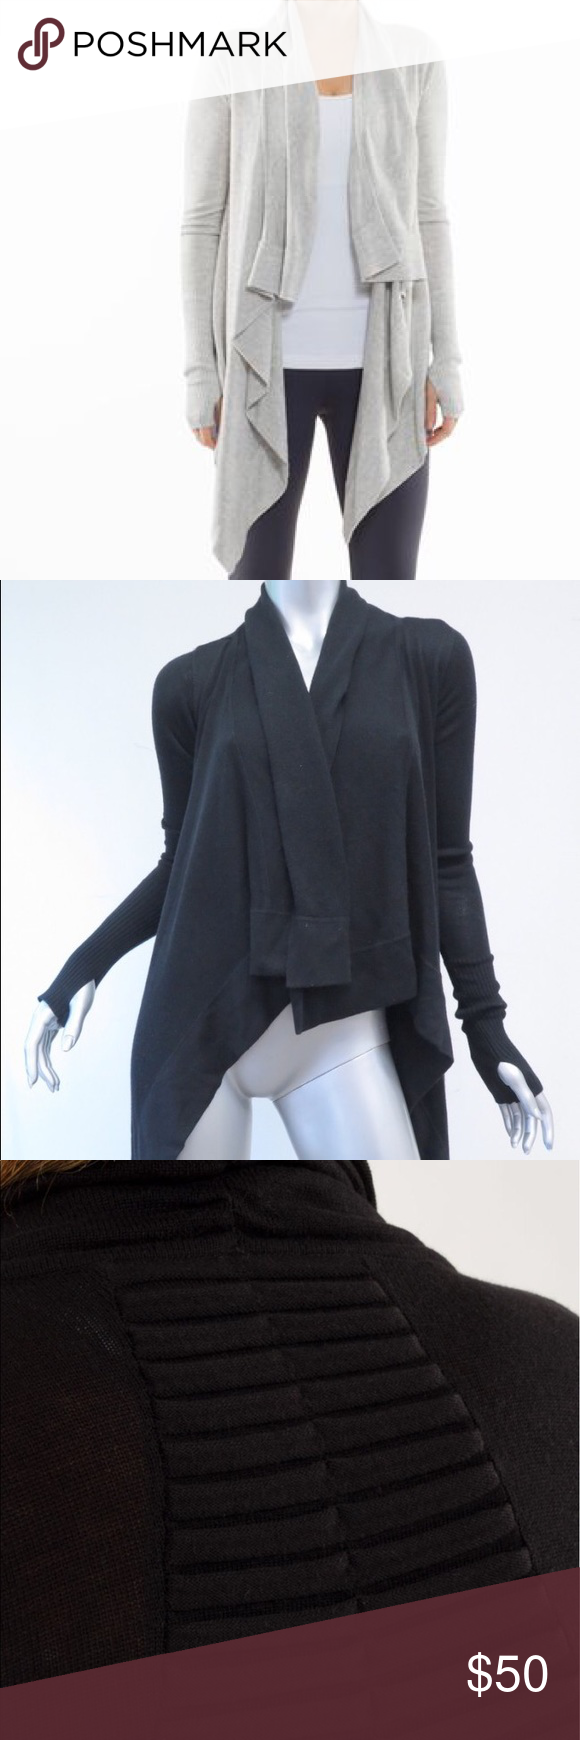 Lululemon Live Healthy Cardigan Wrap BLACK Excellent condition, black color, will post photos of the actual item shortly. lululemon athletica Jackets & Coats